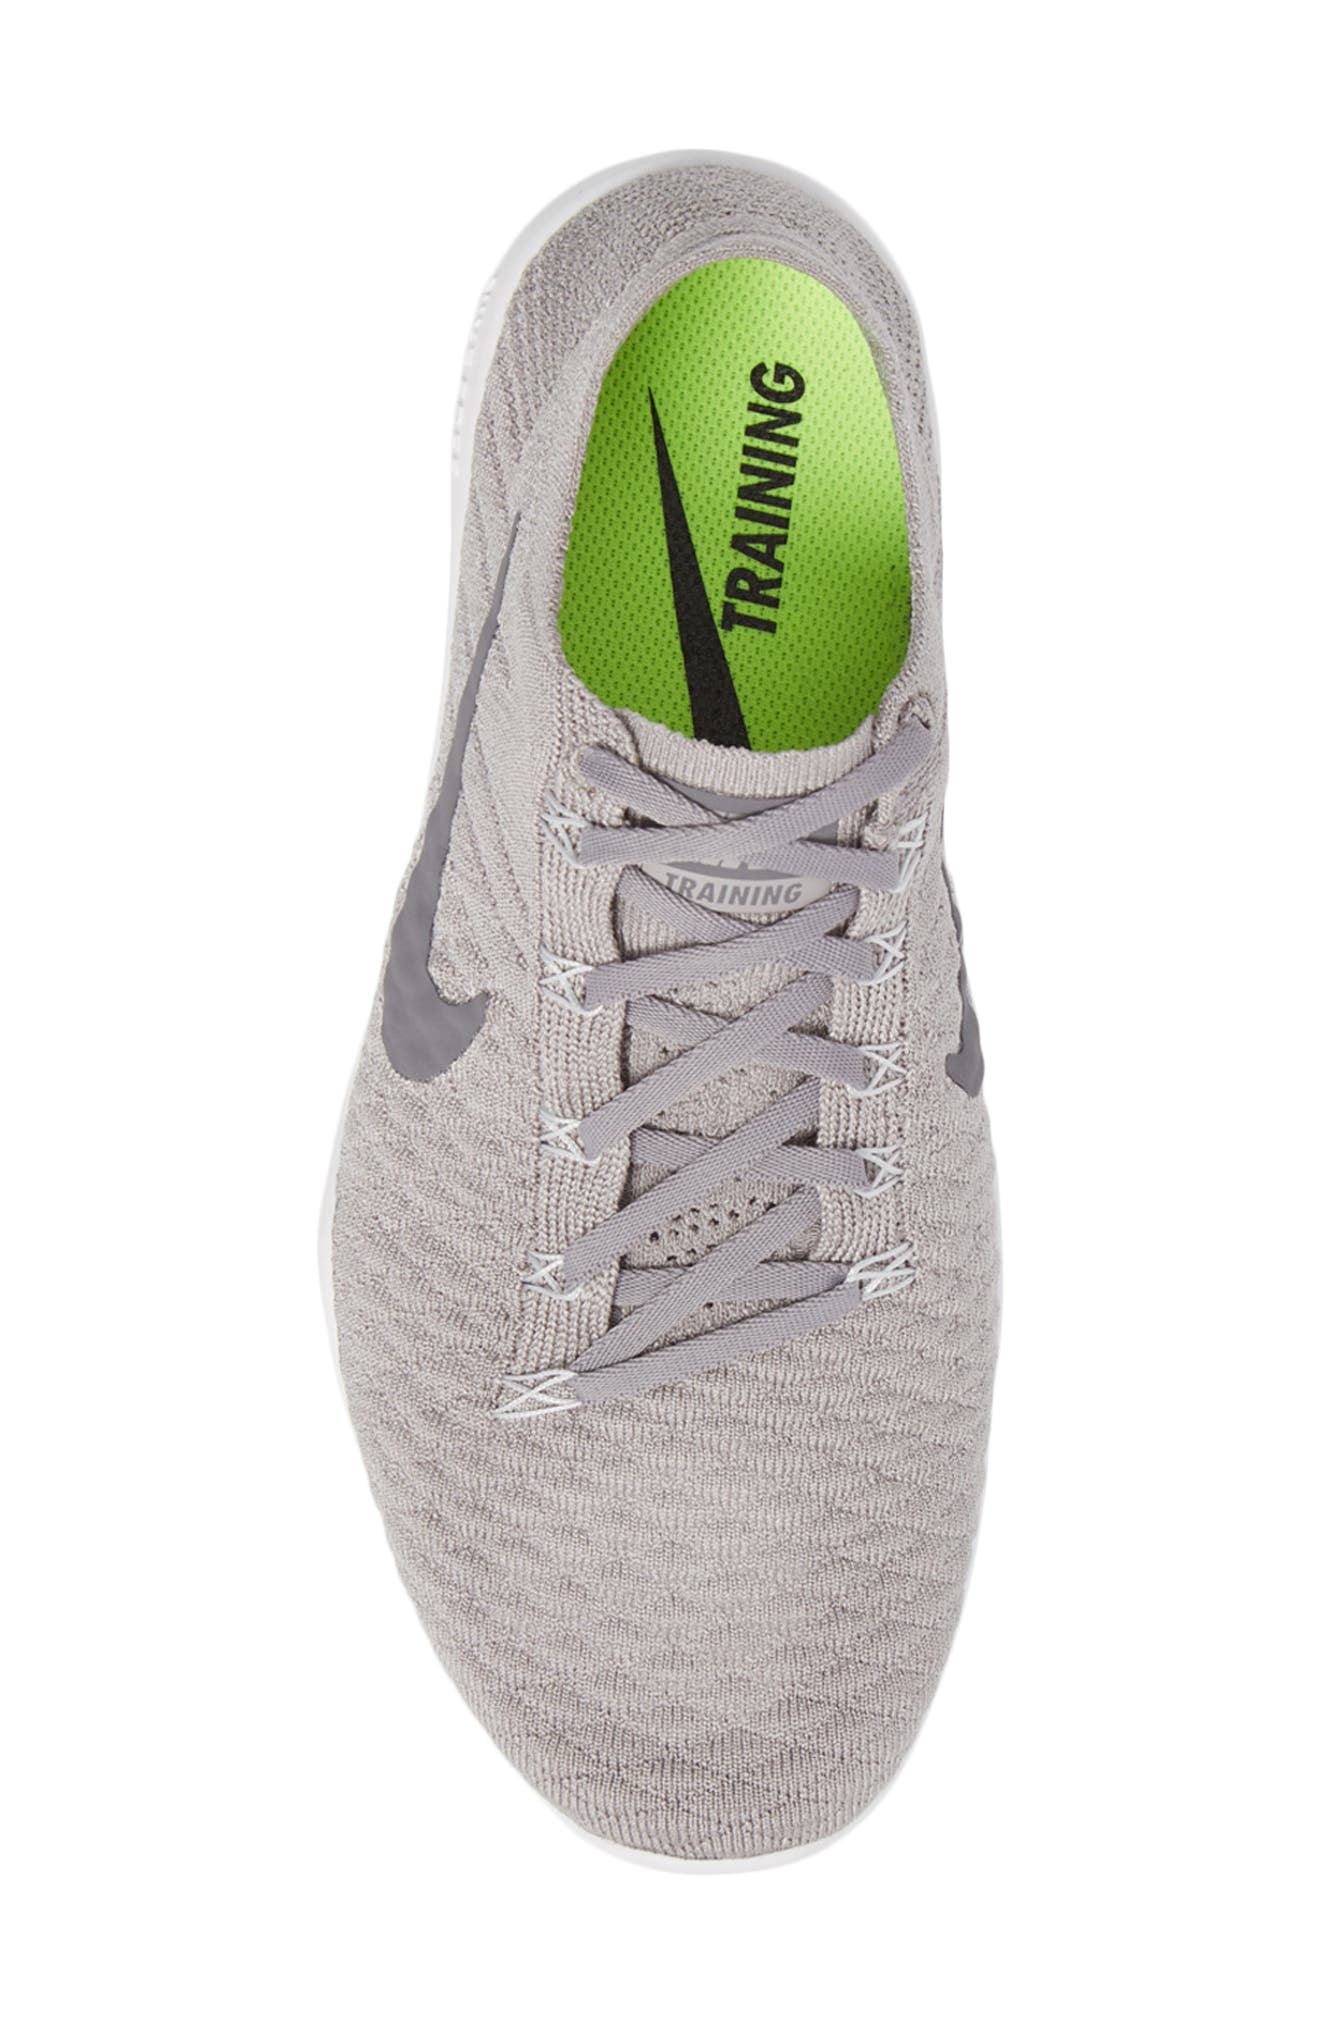 Free TR Flyknit 2 Training Shoe,                             Alternate thumbnail 17, color,